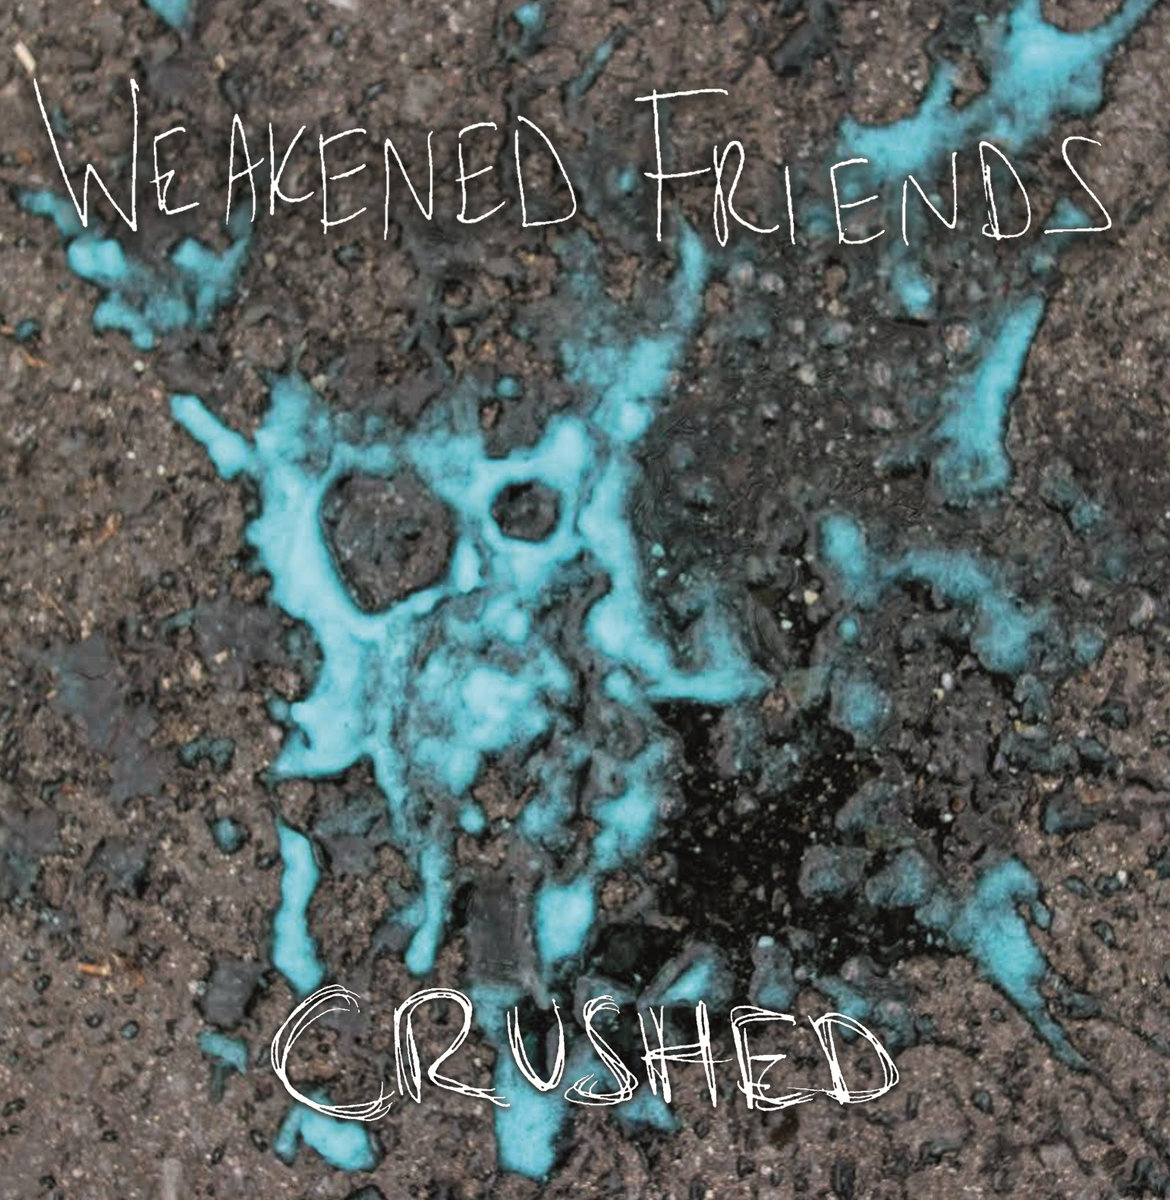 Weakened Friends - Crushed / Gloomy Tunes 12